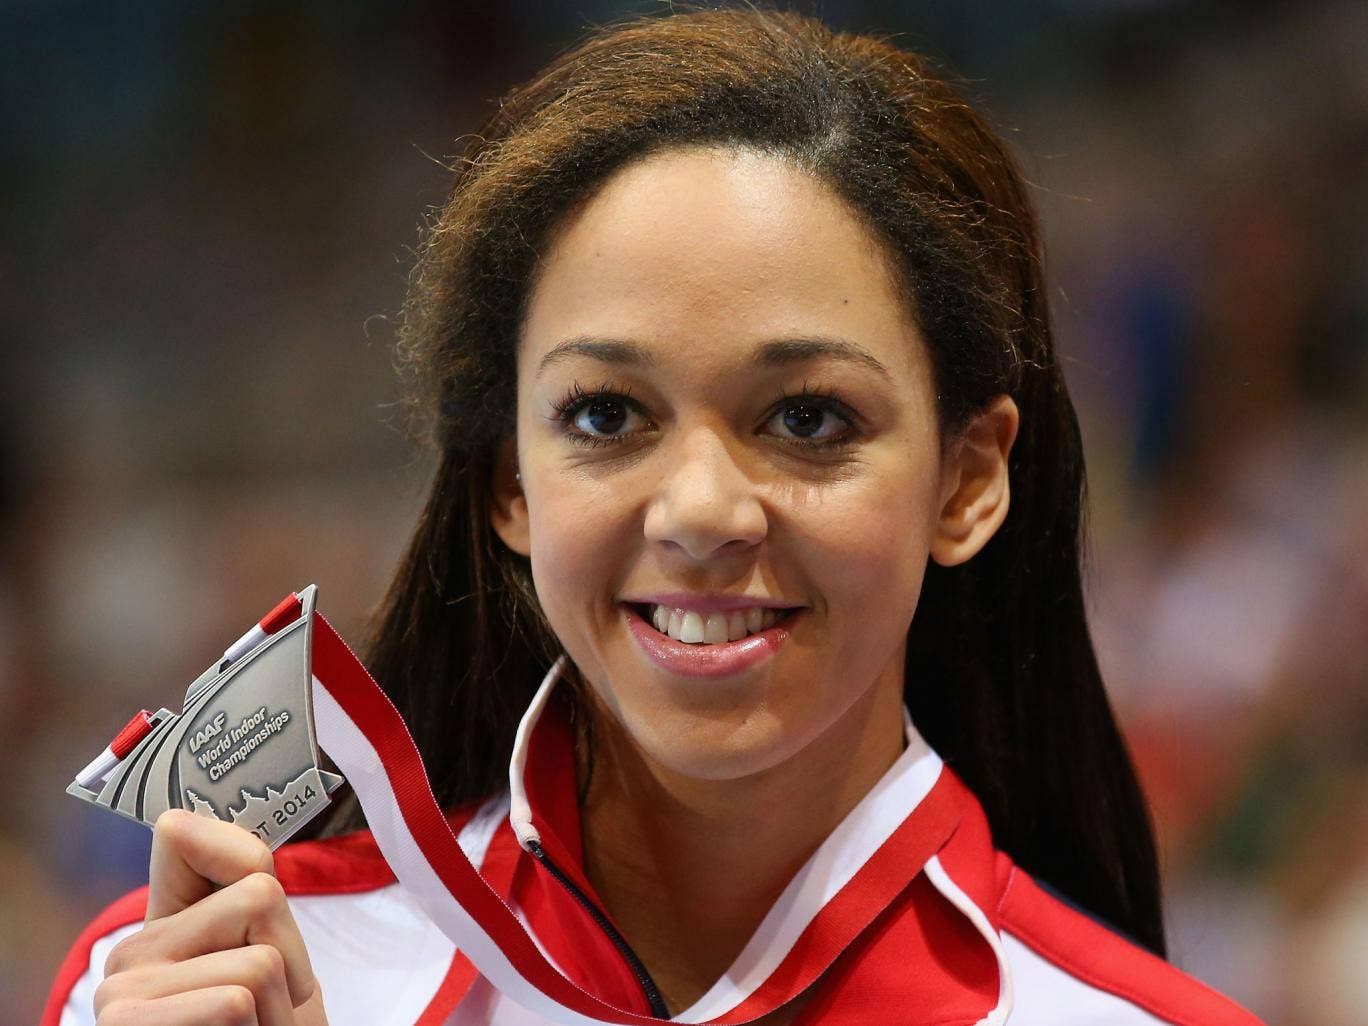 Britain's Katarina Johnson-Thompson poses with her silver medal in the Women's Long Jump